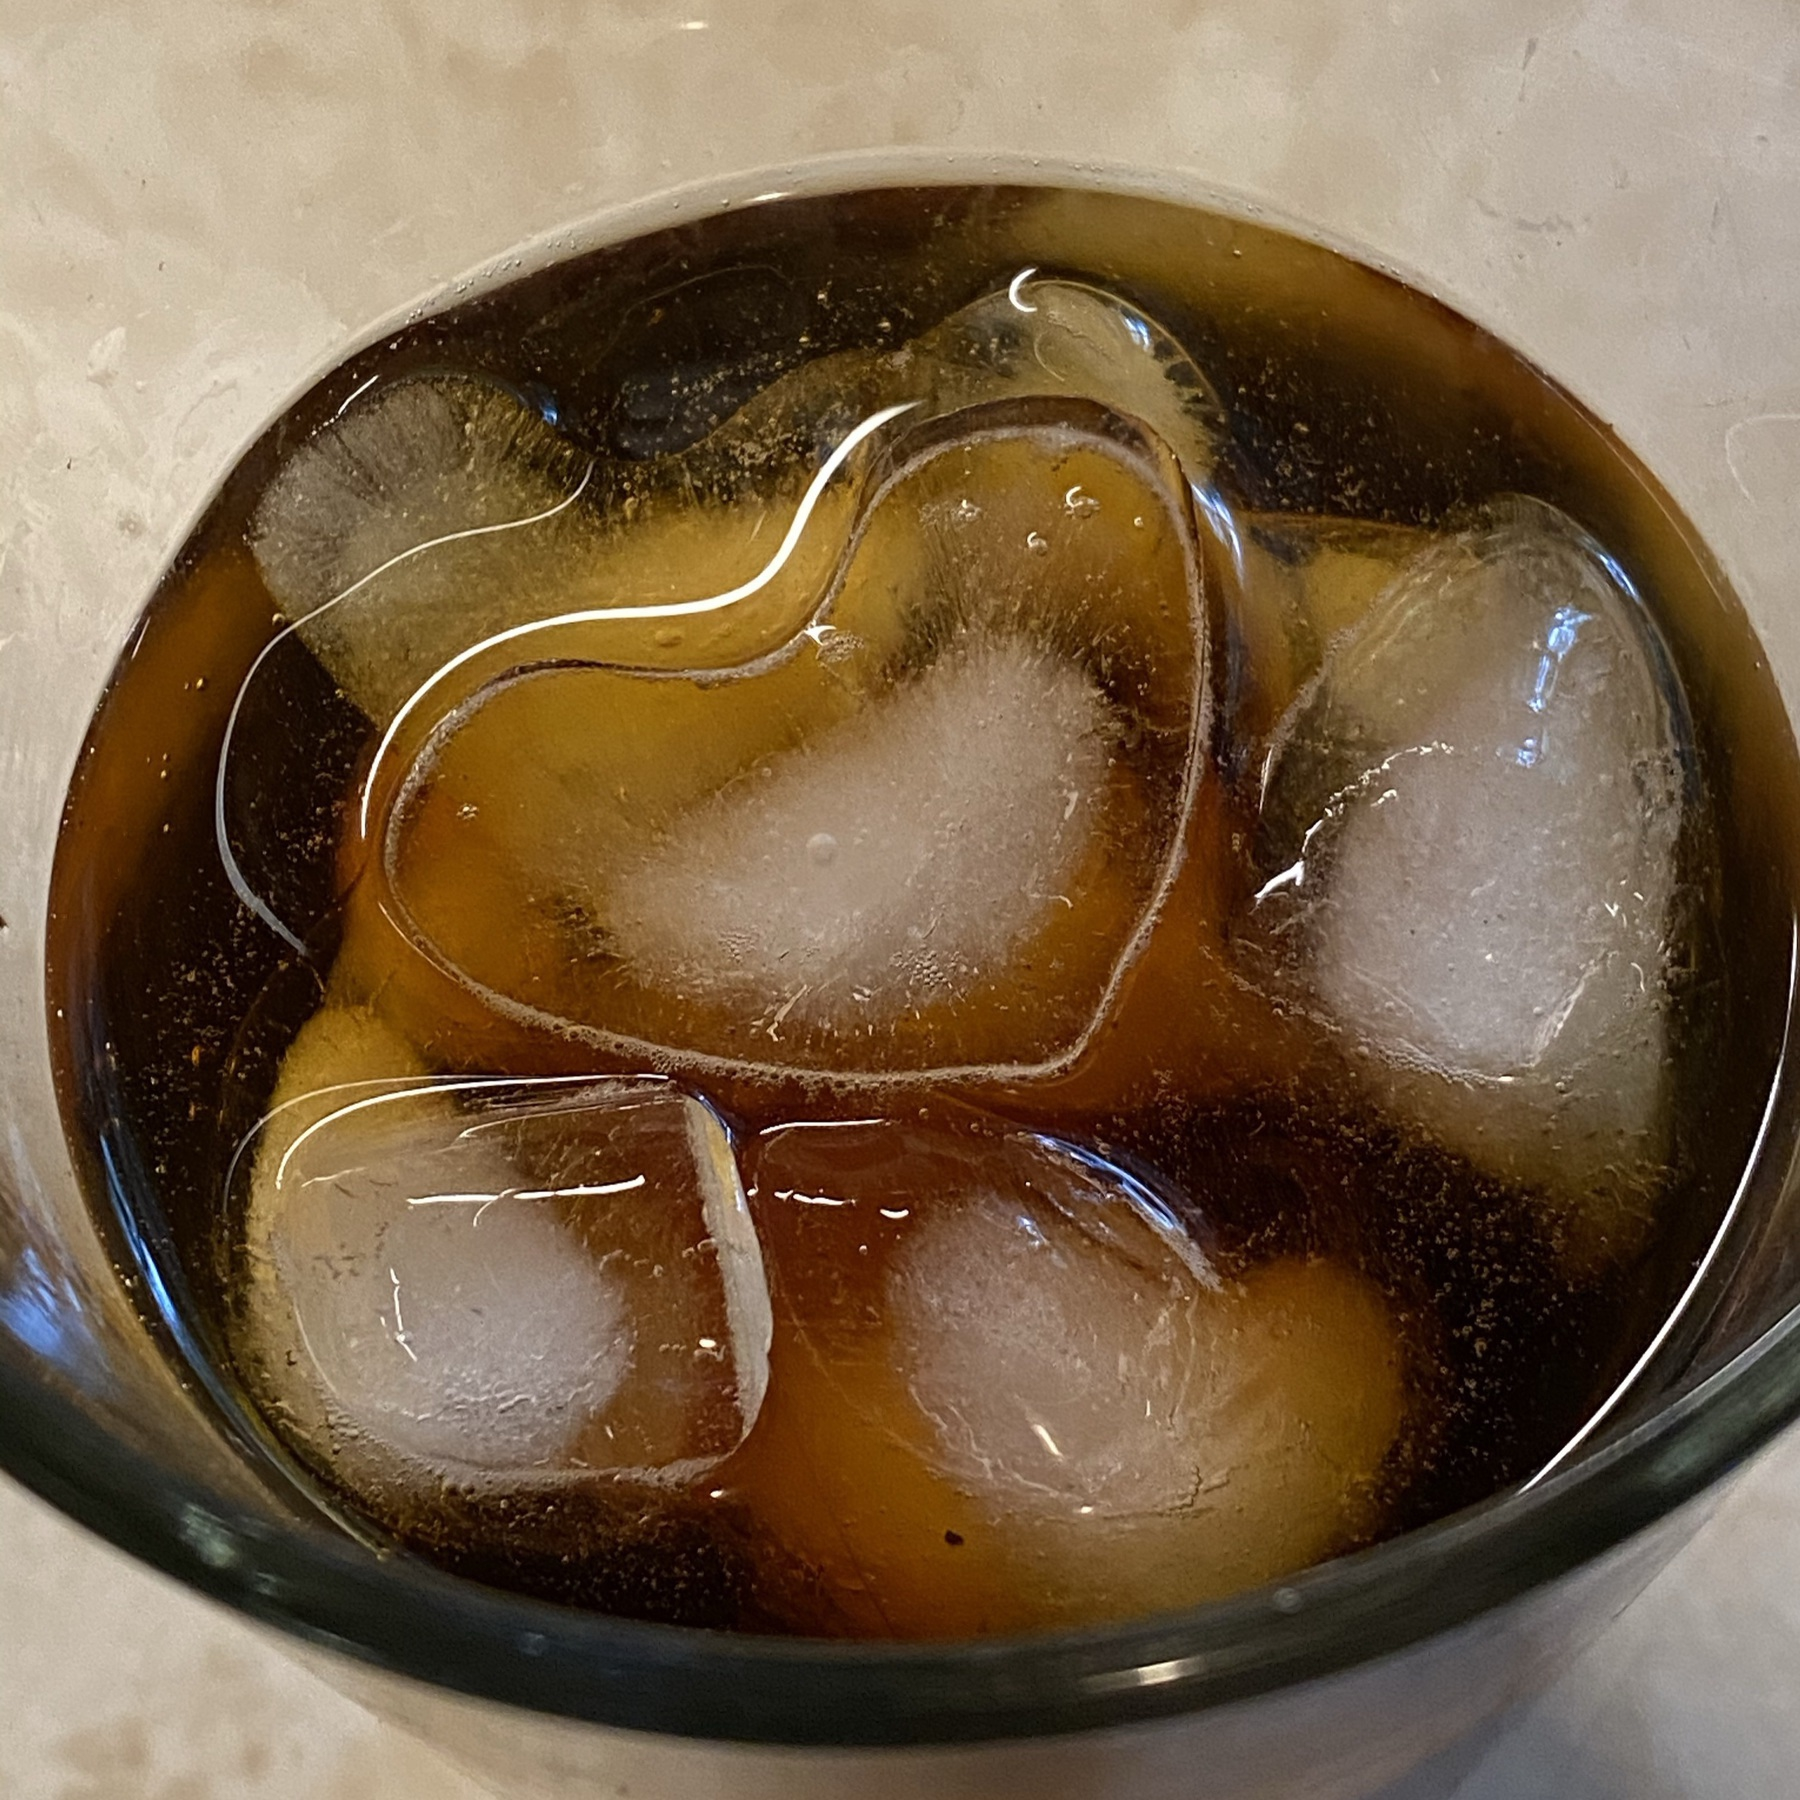 Cold brewed coffee in glass with ice cubes.